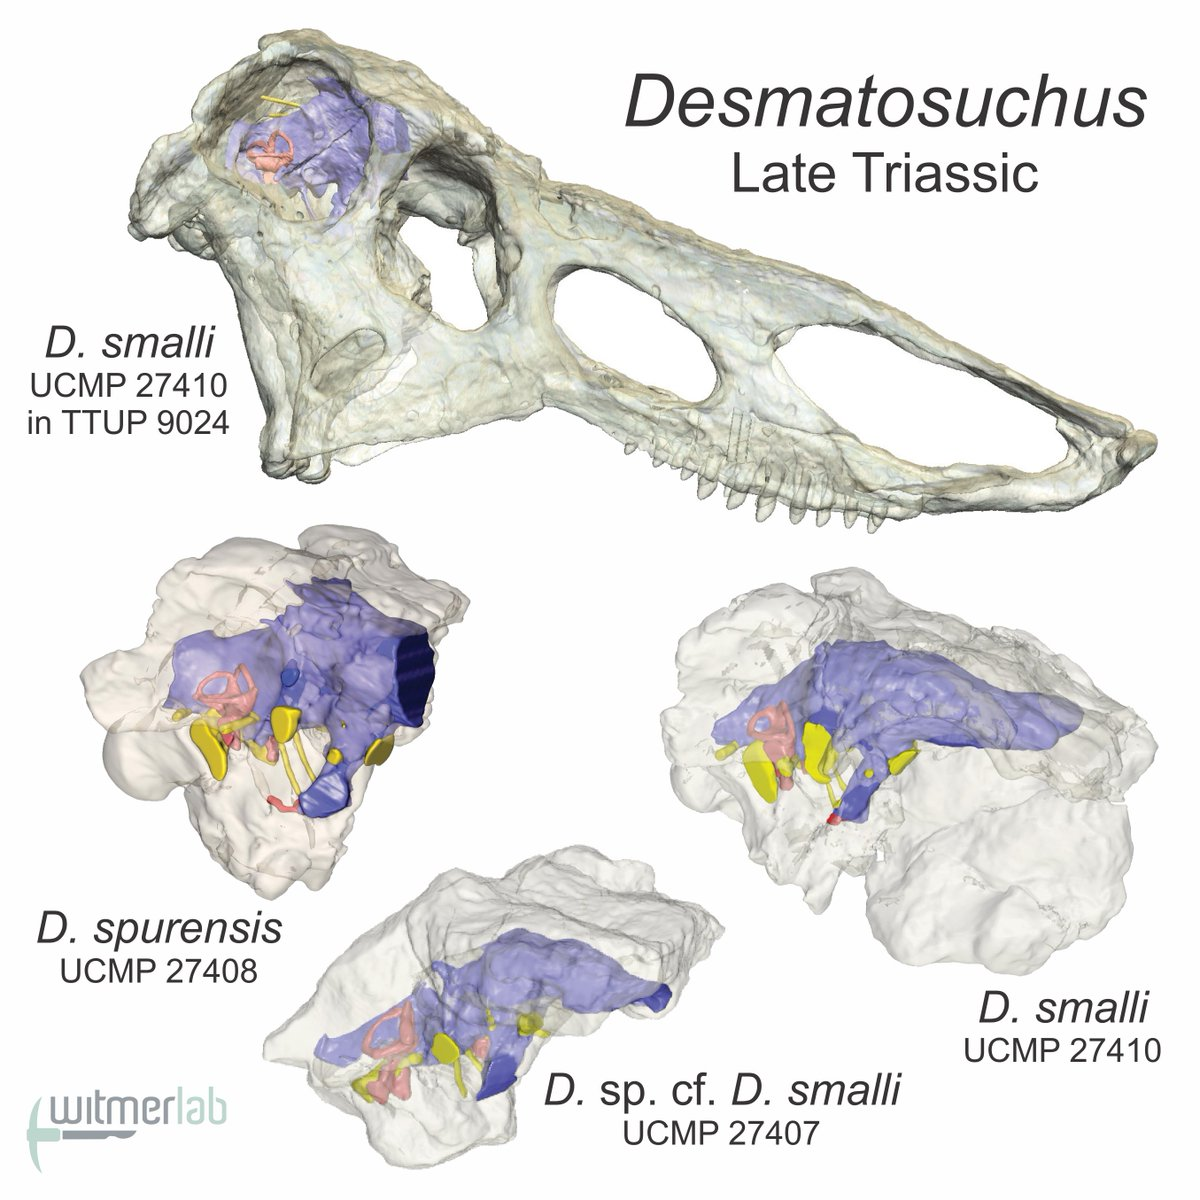 Thrilled to have this new article in @AnatRecord out today! Aetosaur brain endocasts w/ great collaborators led by Belén von Baczko & Julia Desojo. #Paleoart by @victorleshyk  Ryan Ridgely & I first scanned these @ucmpberkeley fossils many yrs ago—glad to finally get this out!